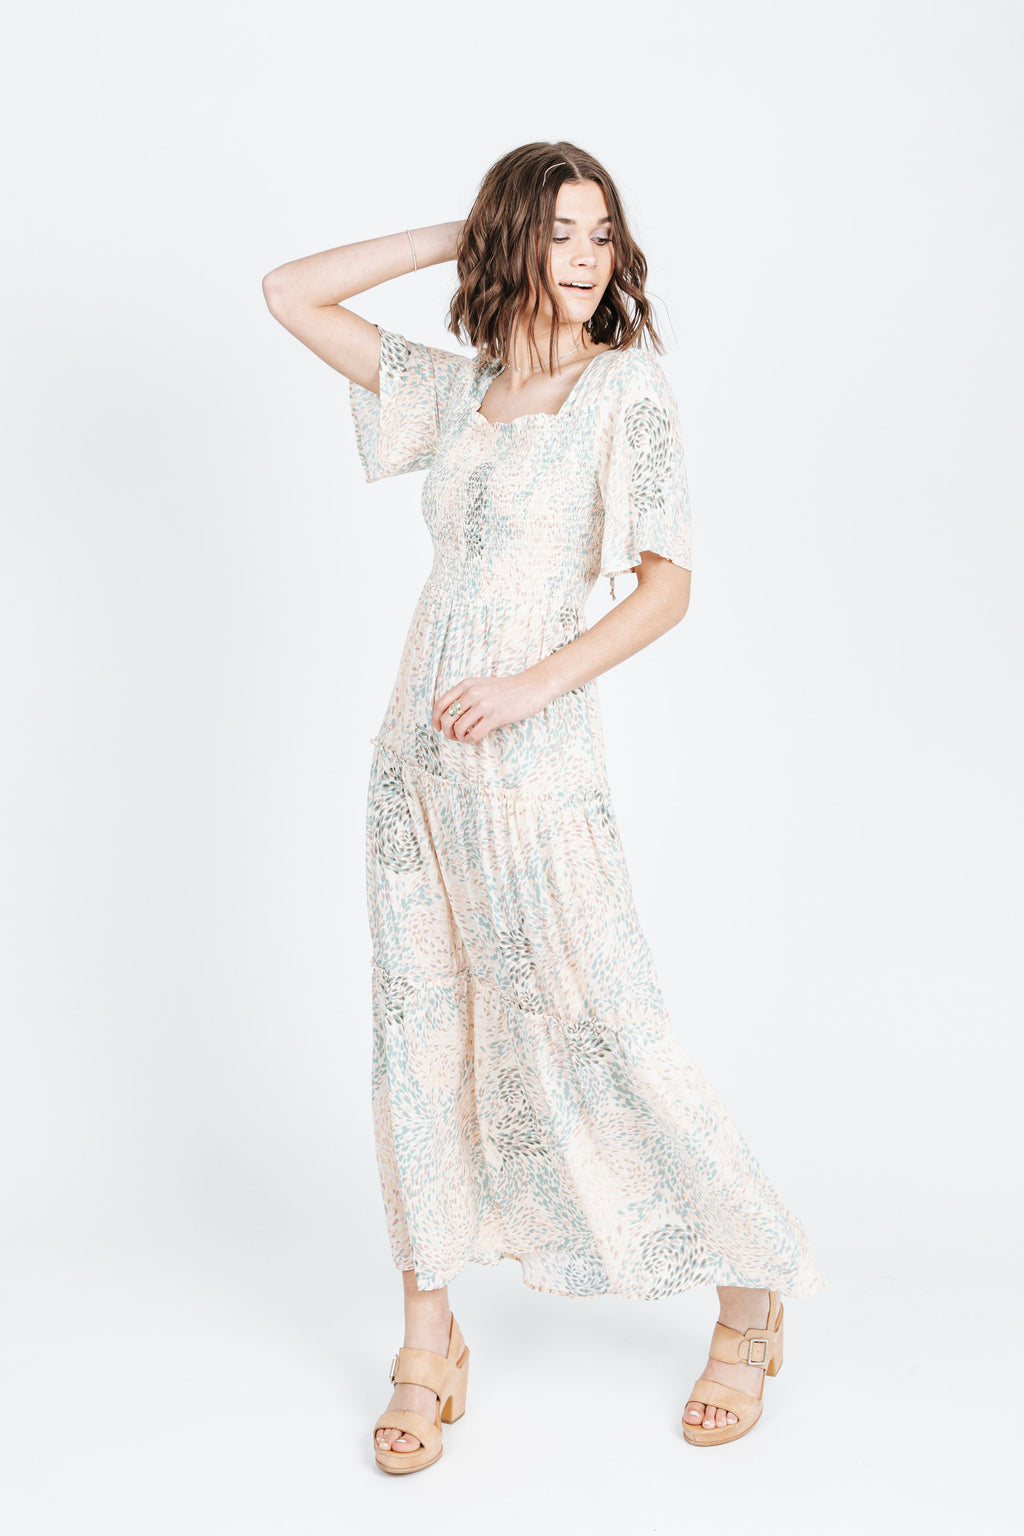 The Dreamy Patterned Maxi Dress in Cream, studio shoot; front view